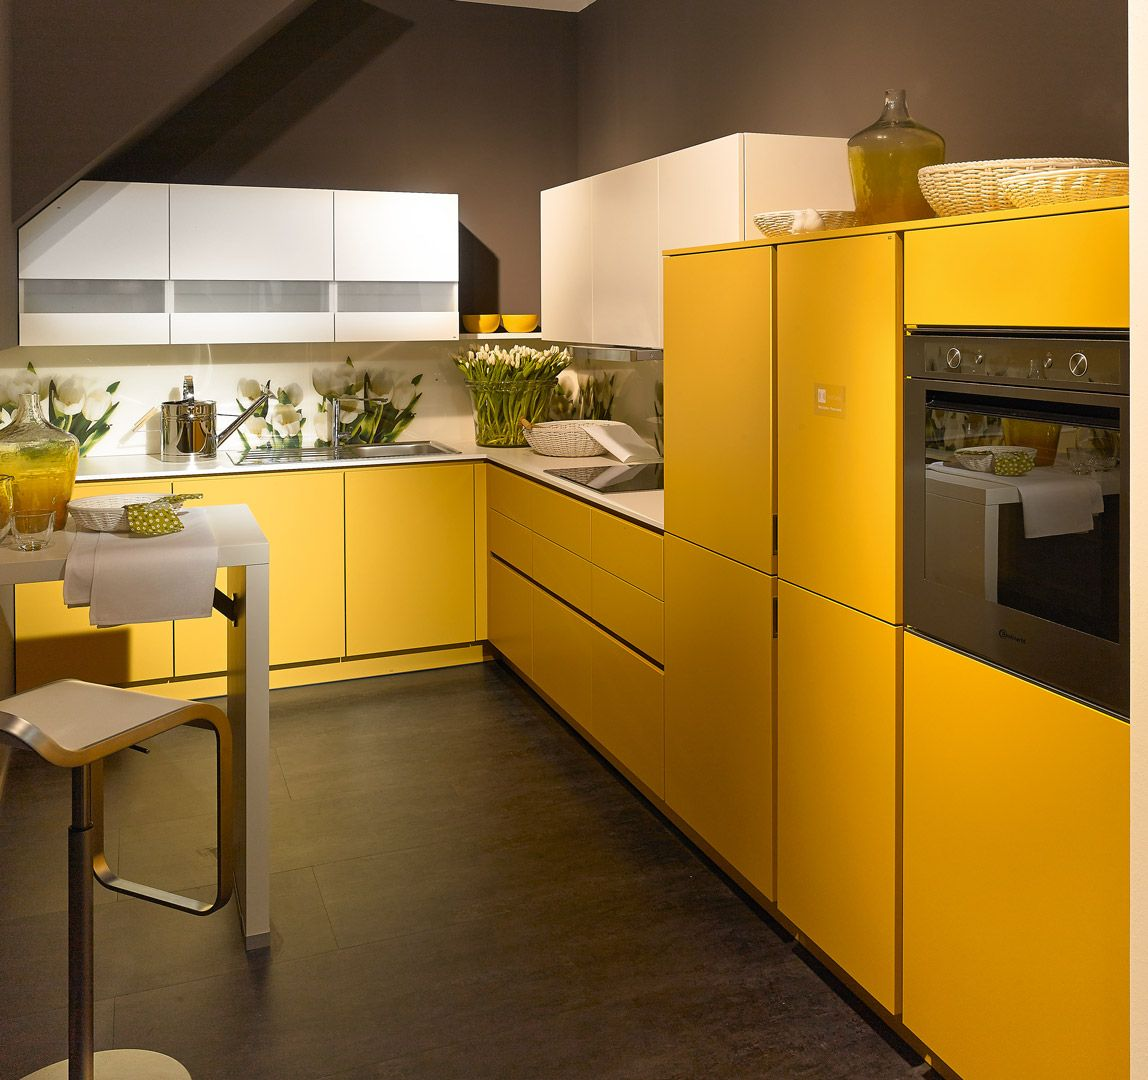 Kitchen Cabinets Handleless: Fitted Kitchens By Alno